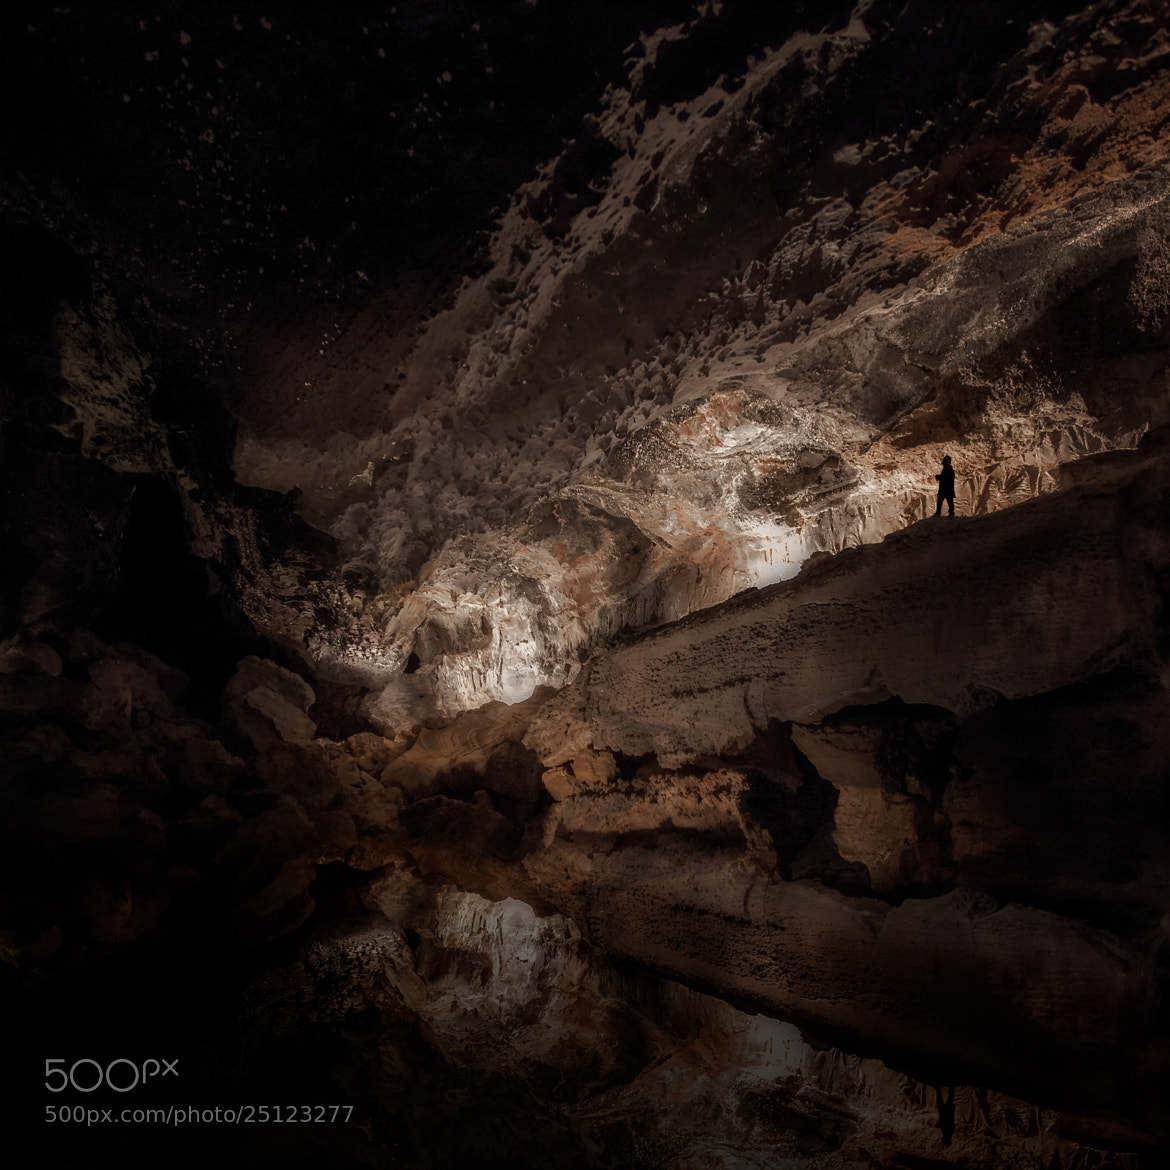 Photograph Grutas by Fermín Noain on 500px